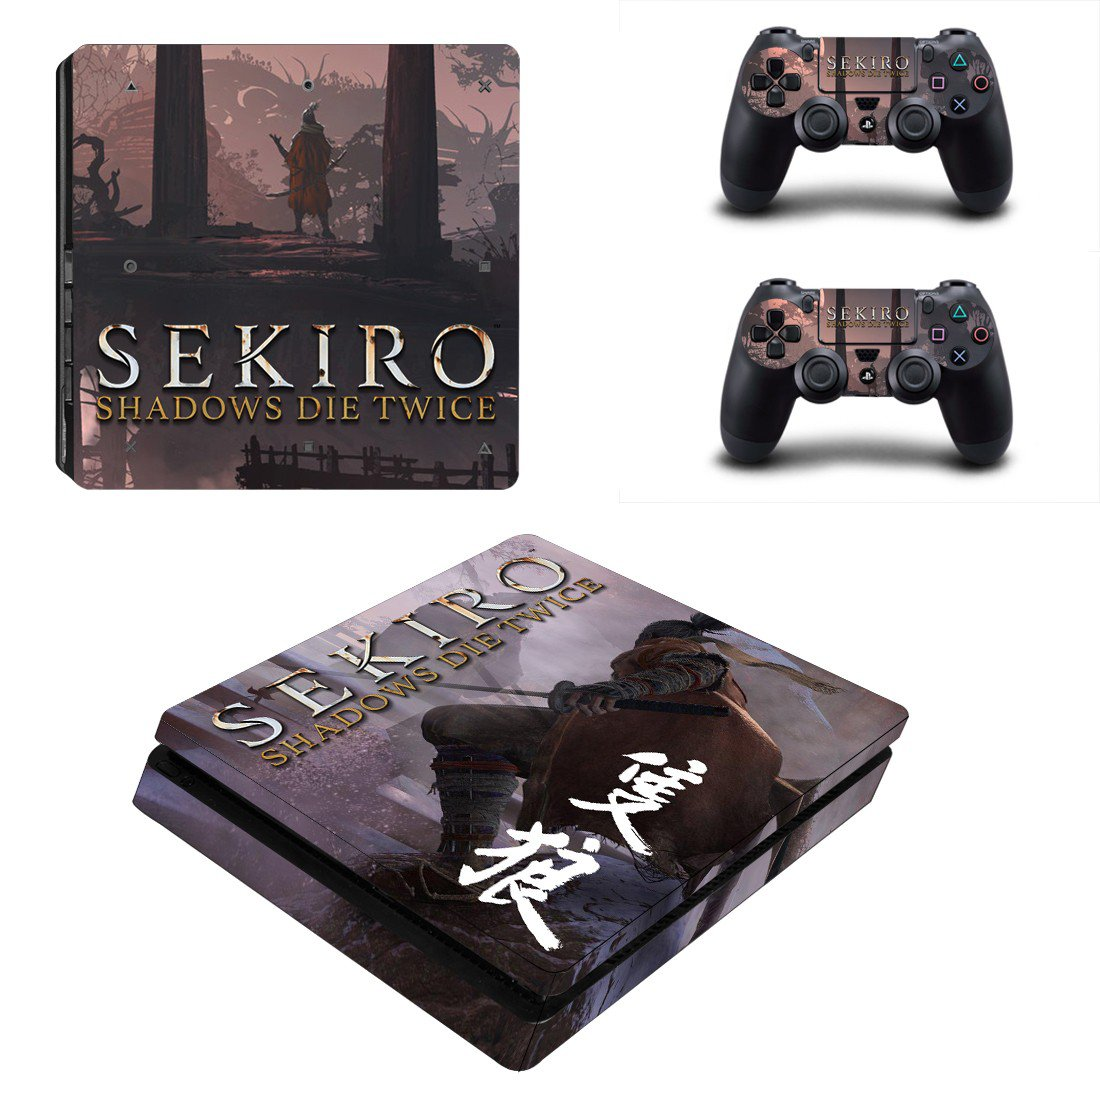 Sekiro decal skin sticker for PS4 Slim console and controllers